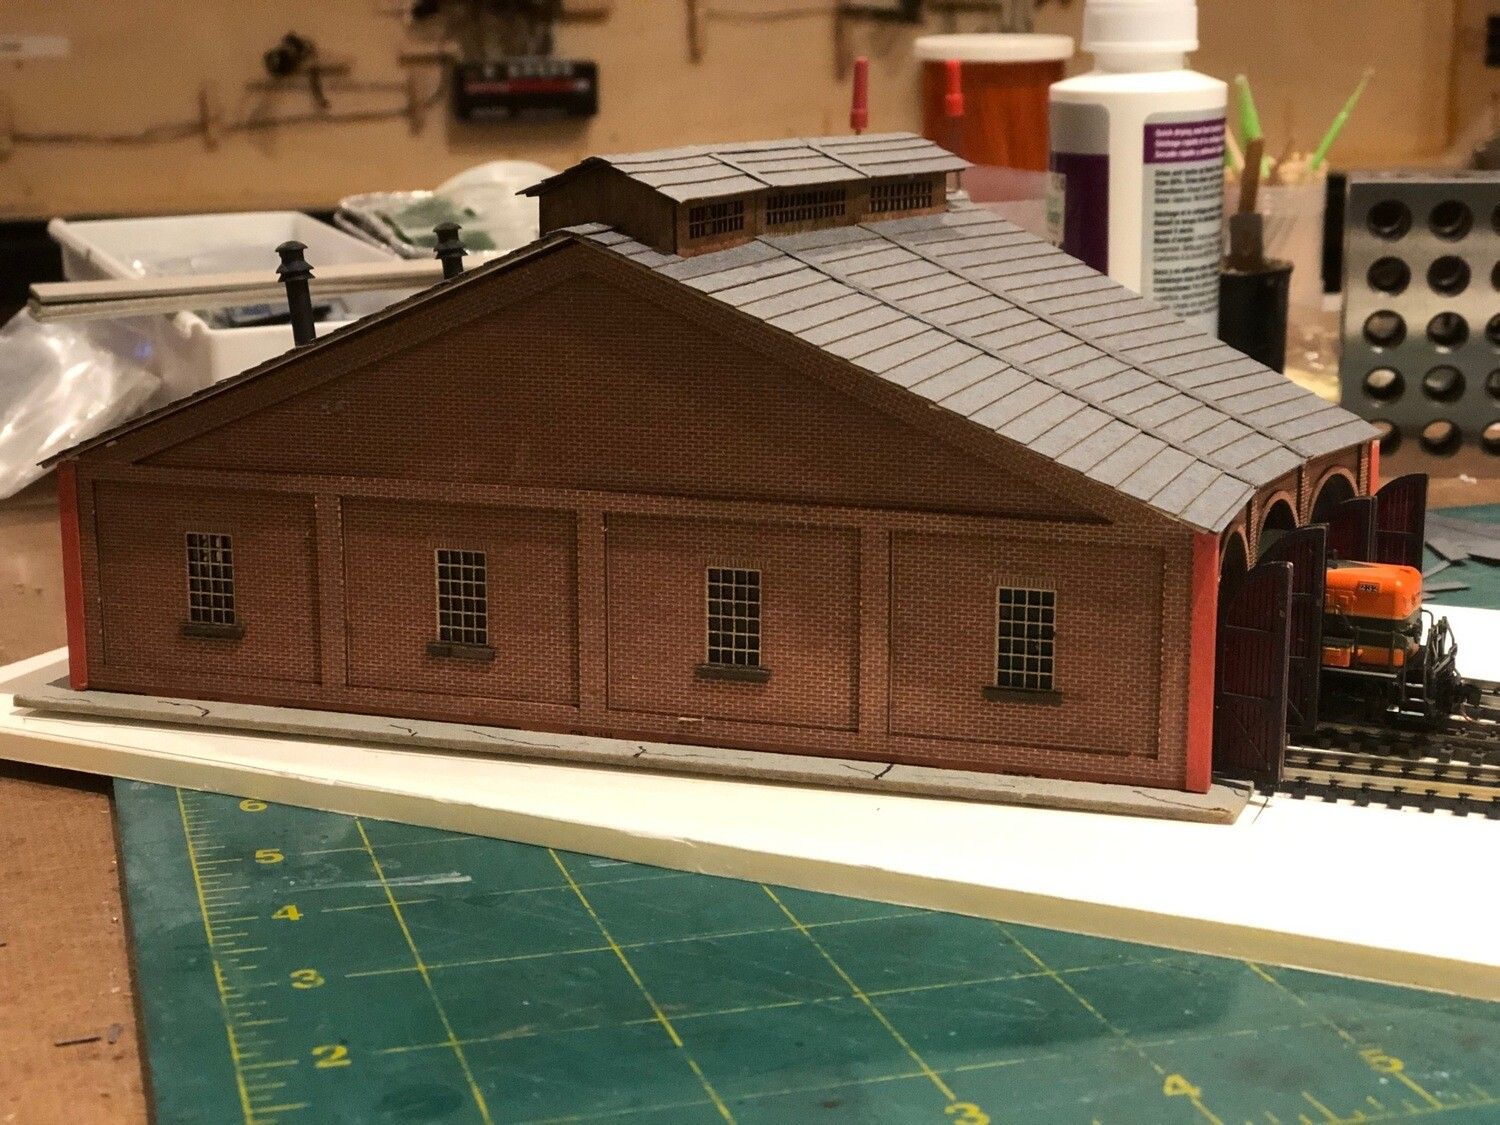 Pennsylvania Railroad (PRR) 3 Stall Roundhouse Laser Cut Building Kit